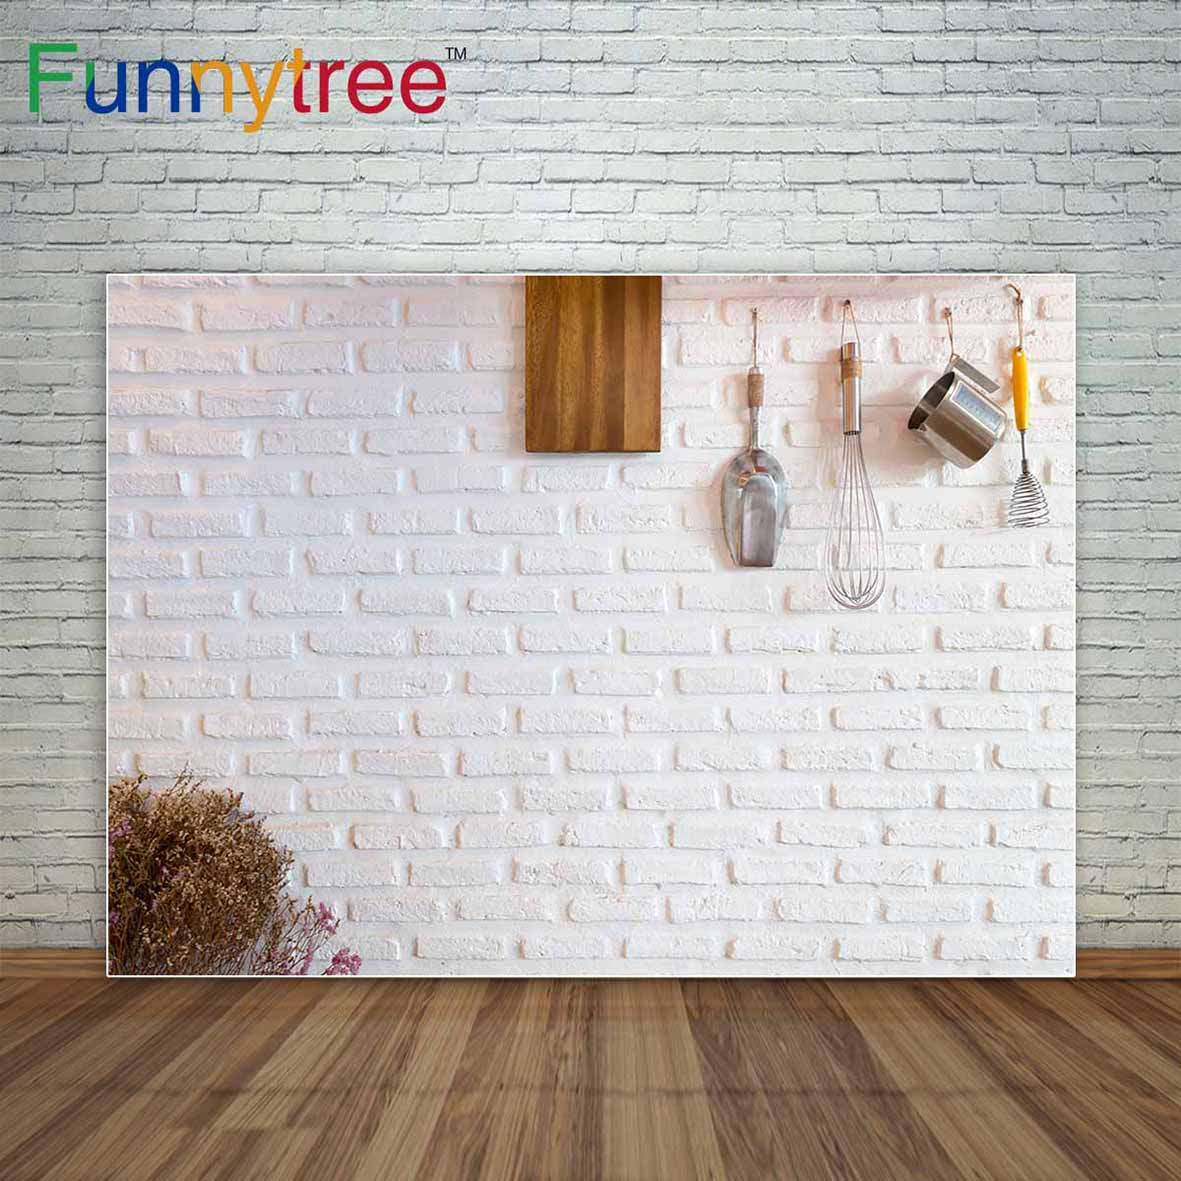 Funnytree photo background white brick wall with kitchen tools backdrop professional photography background decoration photocall christmas photo background rose daisy flower professional new born xmas photography photocall background pictures